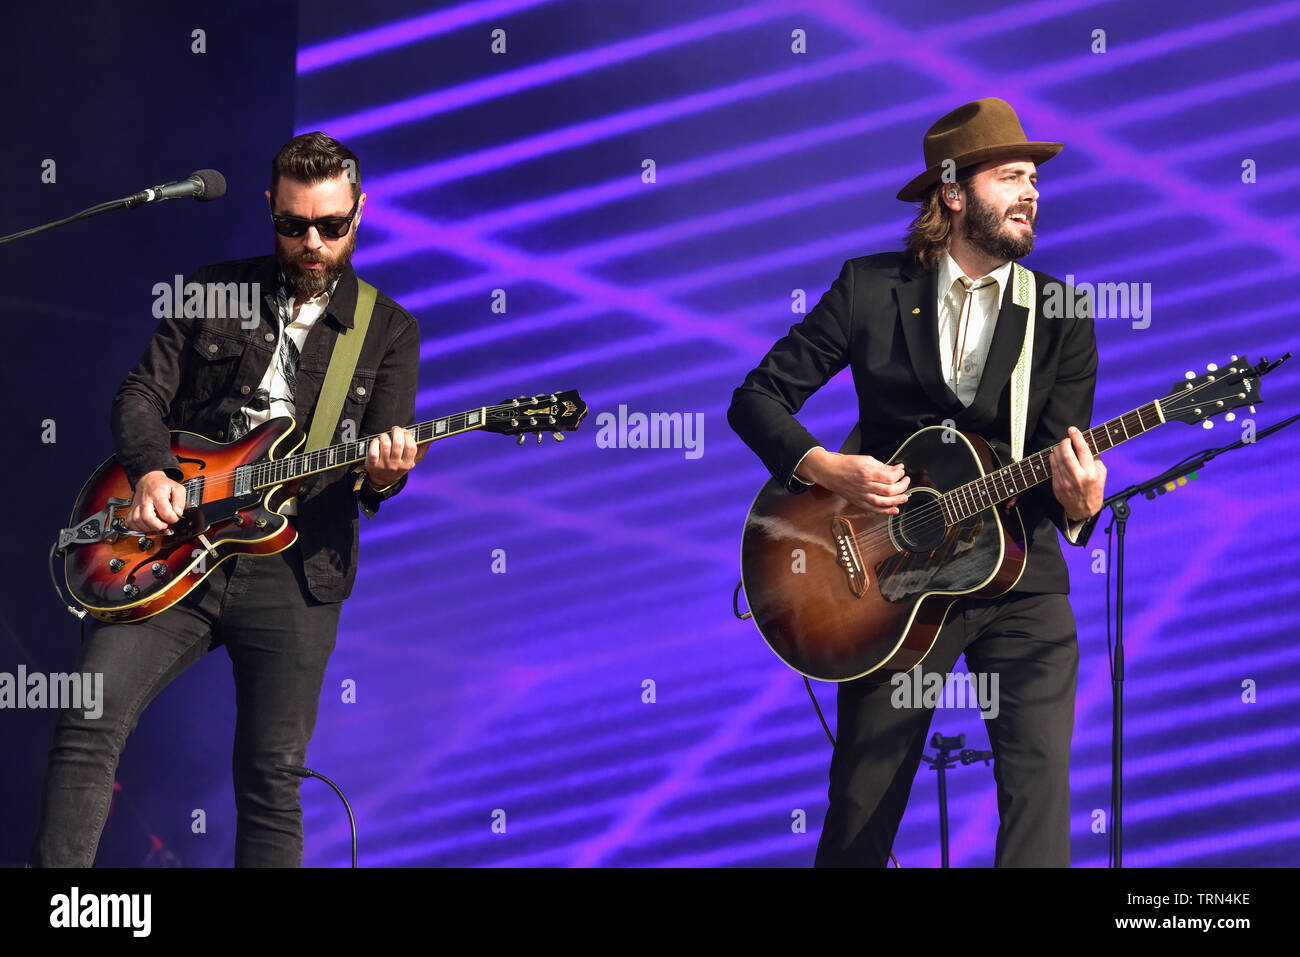 Lord Huron performing on stage at the BottleRock Festival 2019, Napa Valley, California. Stock Photo